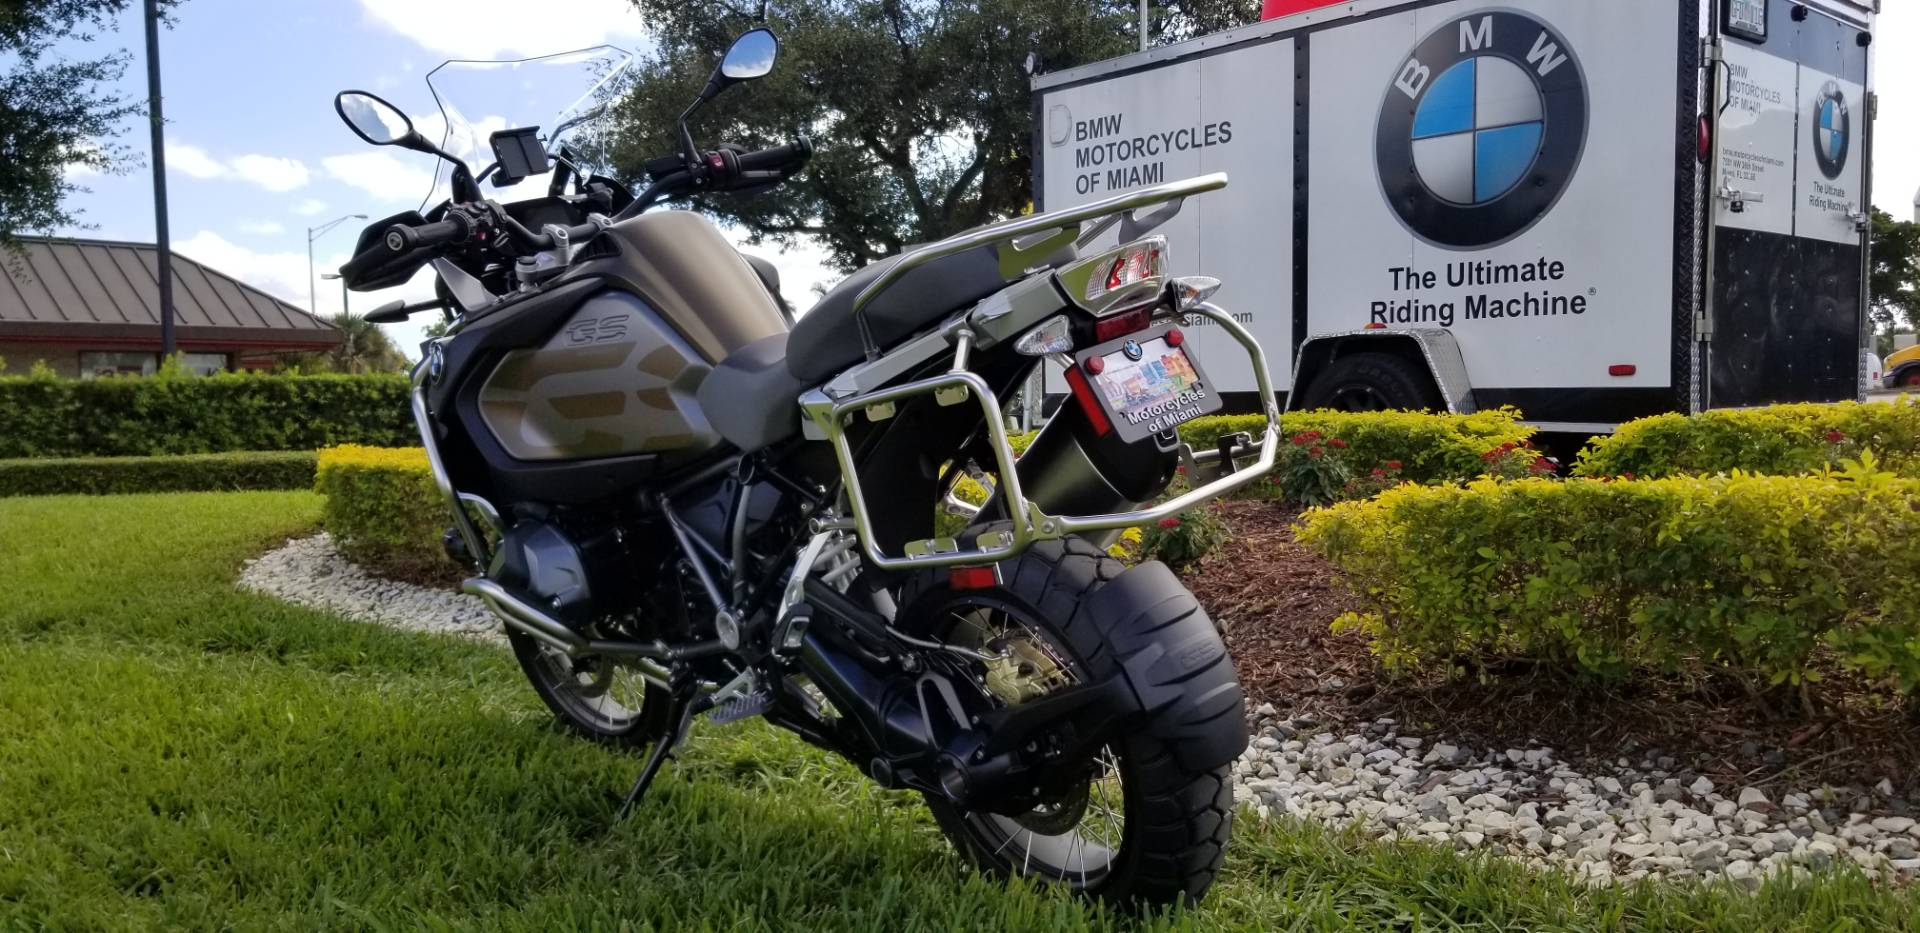 New 2019 BMW R 1250 GSA for sale, BMW for sale R 1250GSA, BMW Motorcycle R1250GSA, new BMW 1250GS Adventure, R1250GSAdventure, BMW Adventure, BMW Motorcycles of Miami, Motorcycles of Miami - Photo 15